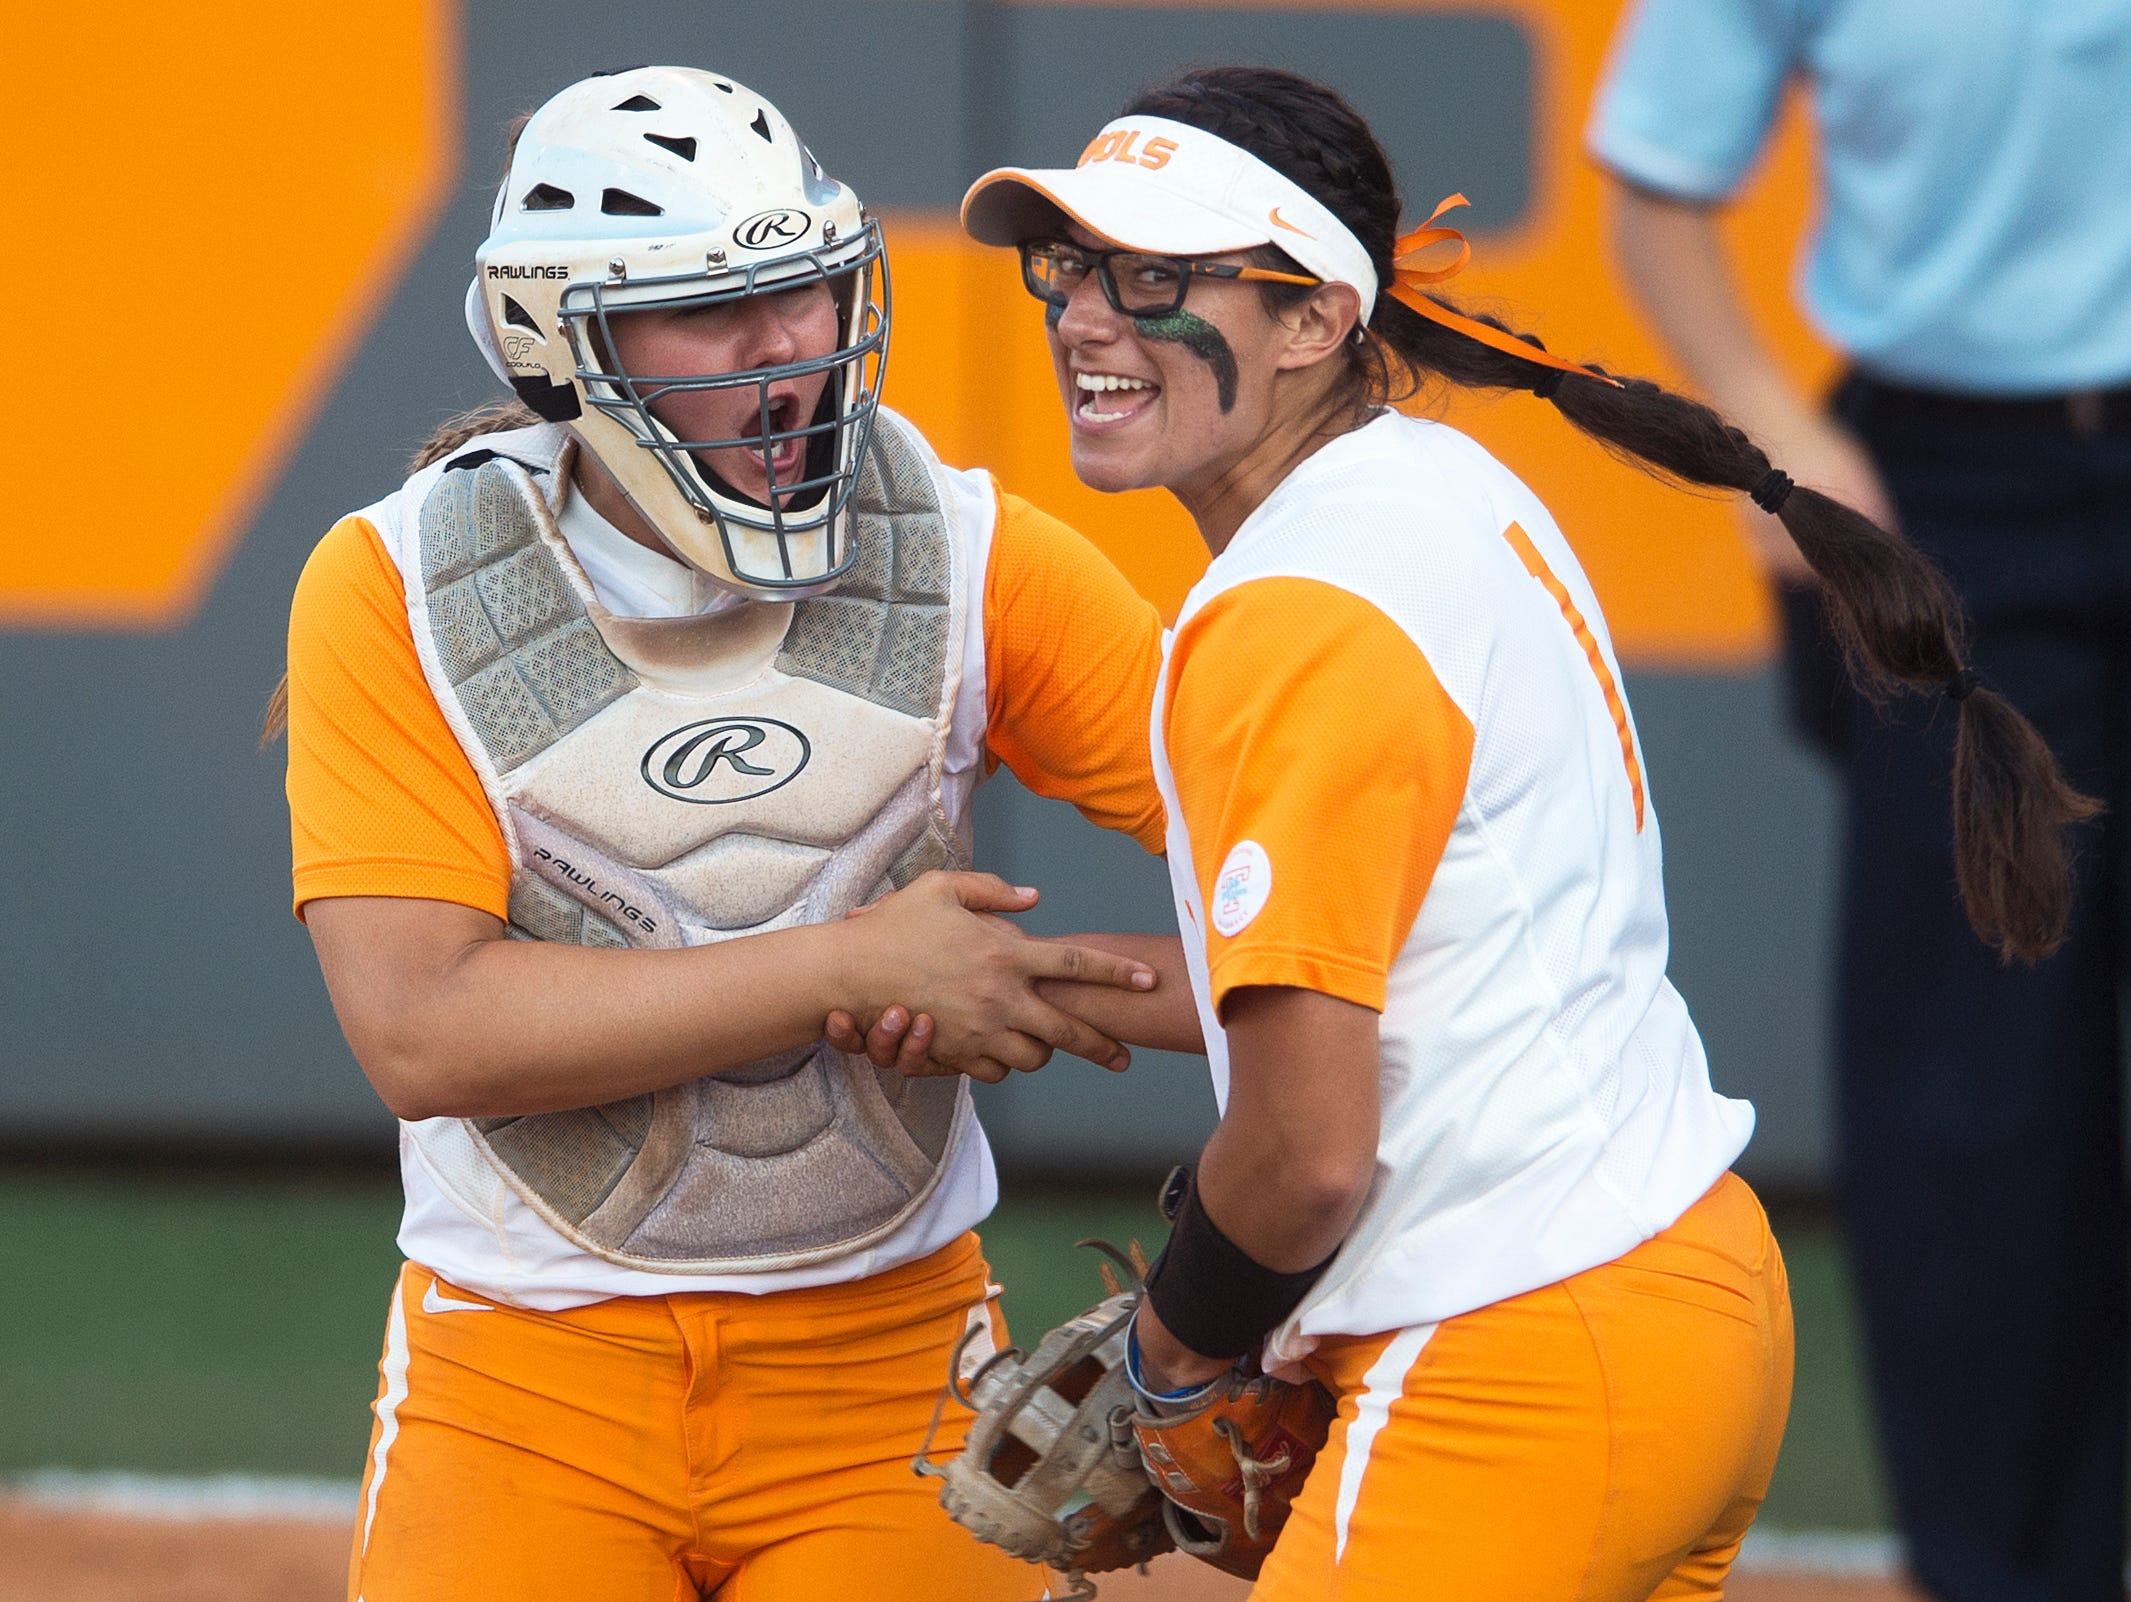 At left Tennessee's Abby Lockman (44) and Tennessee's Matty Moss (1) celebrate at the end of an inning during an NCAA Super Regional game between Tennessee and Texas A&M at Sherri Parker Lee Stadium on Friday, May 26, 2017. Tennessee defeated Texas A&M 8-1.